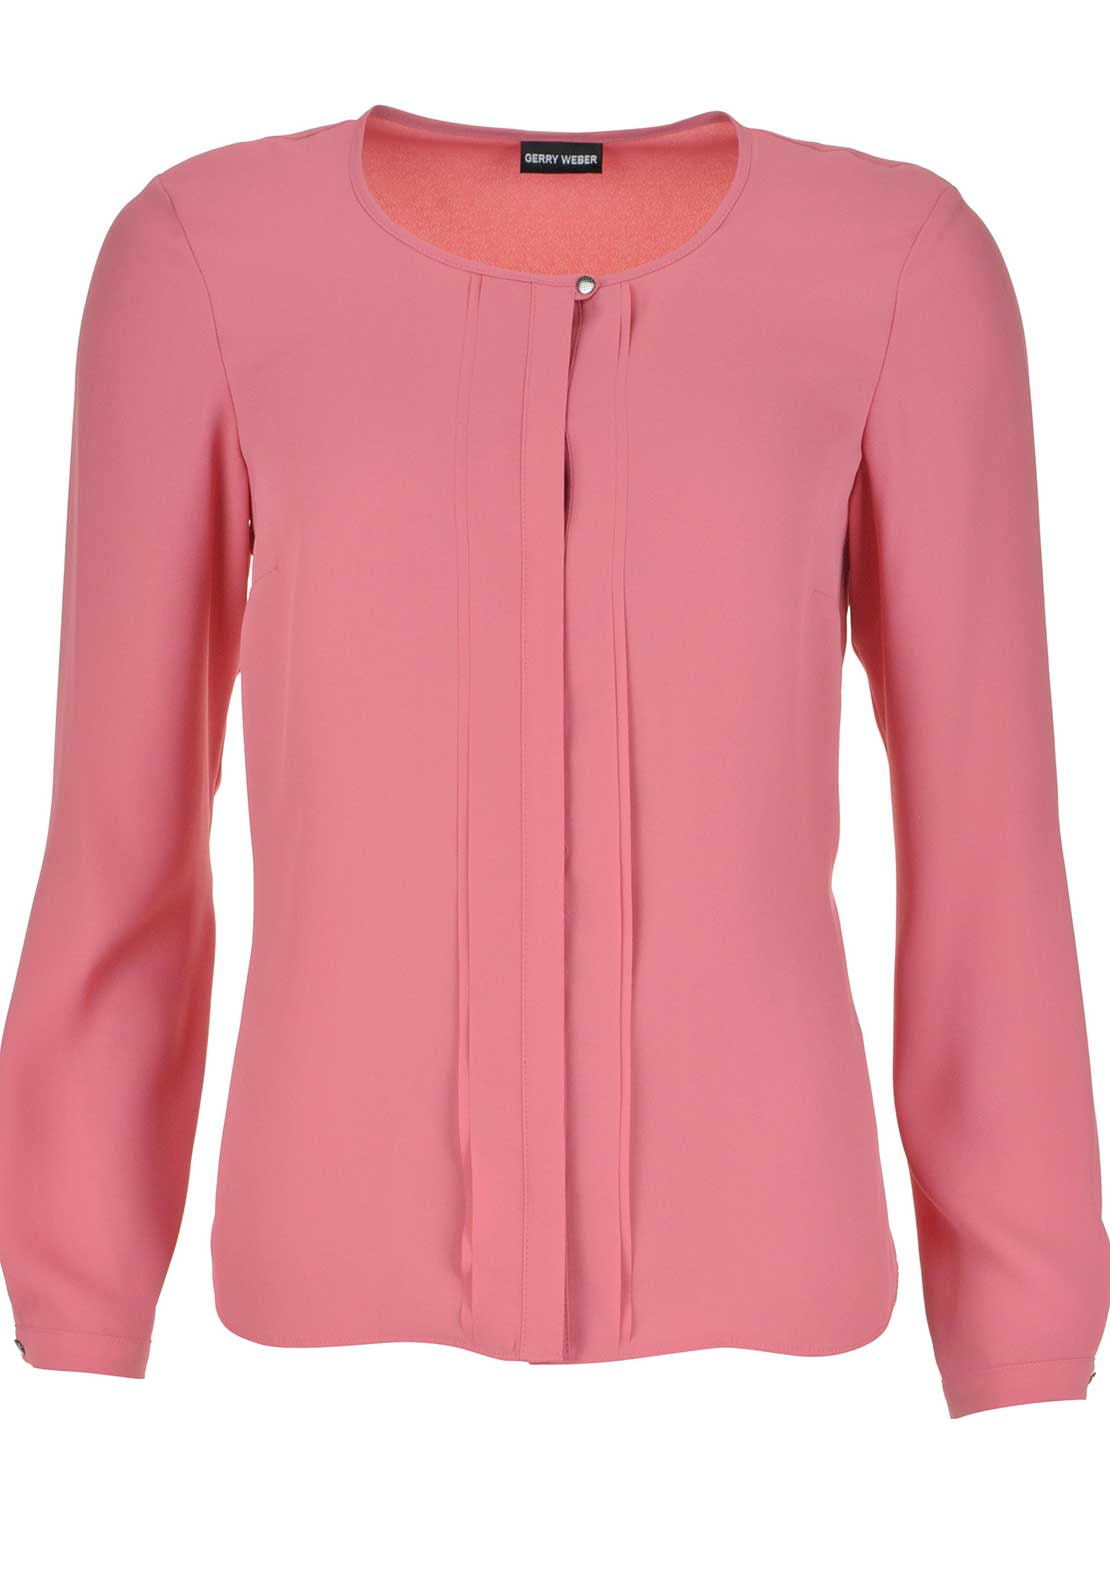 Gerry Weber Pleated Panel Long Sleeve Blouse, Salmon Pink